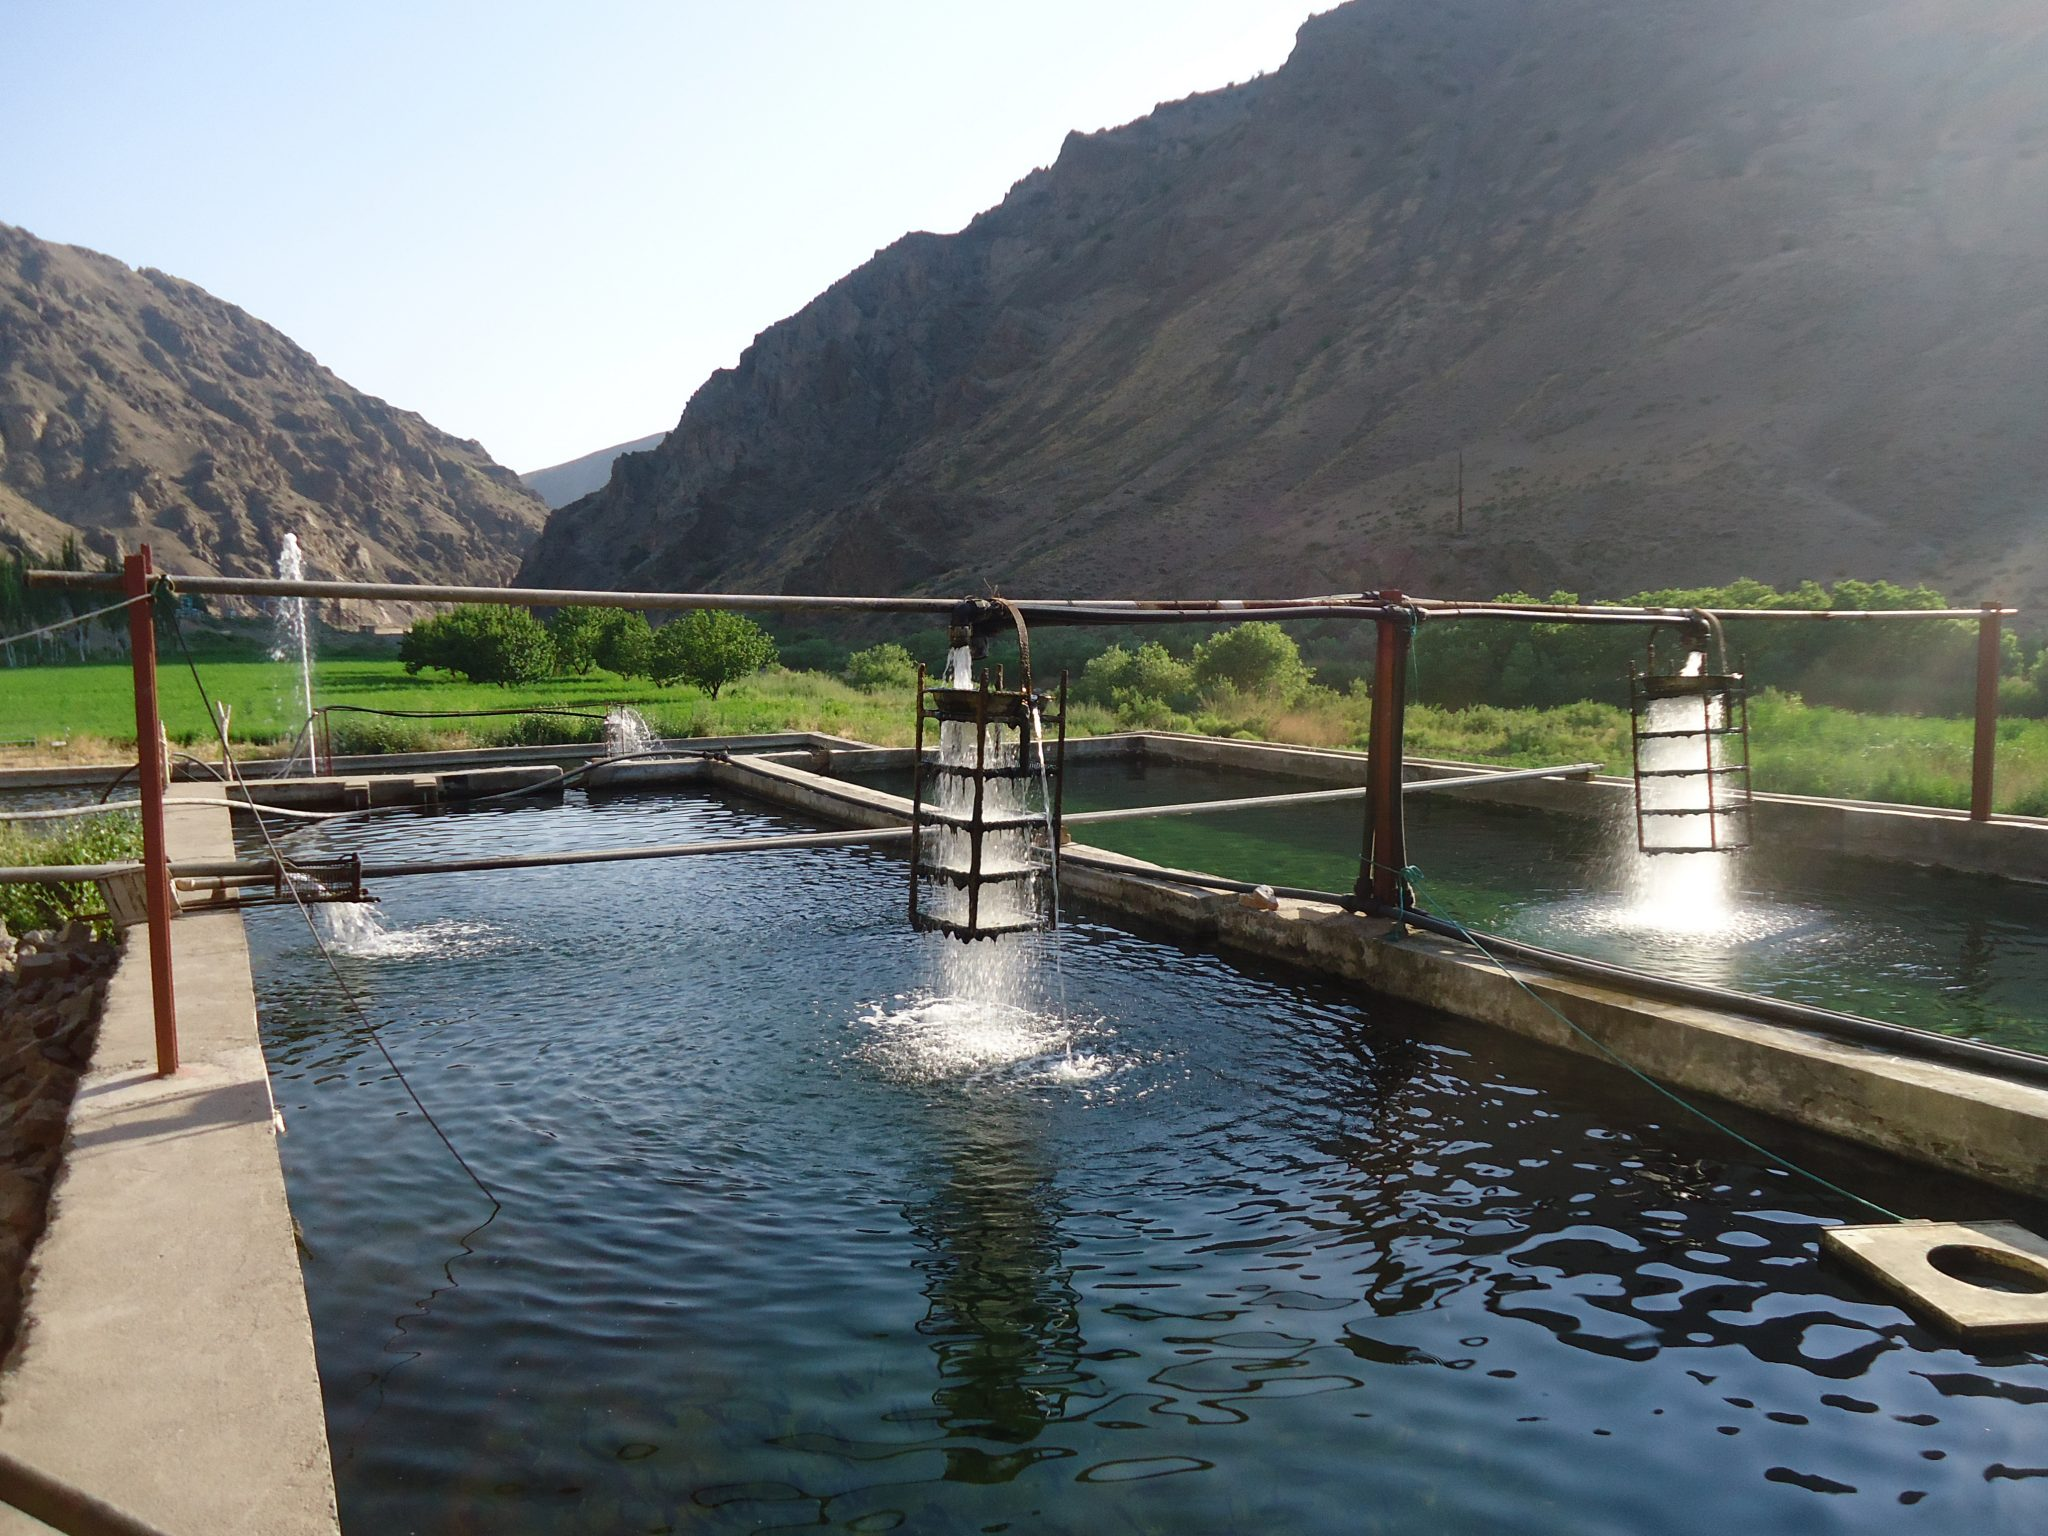 Assessing the existing cold-water fish farms and providing solutions for increasing aquaculture production